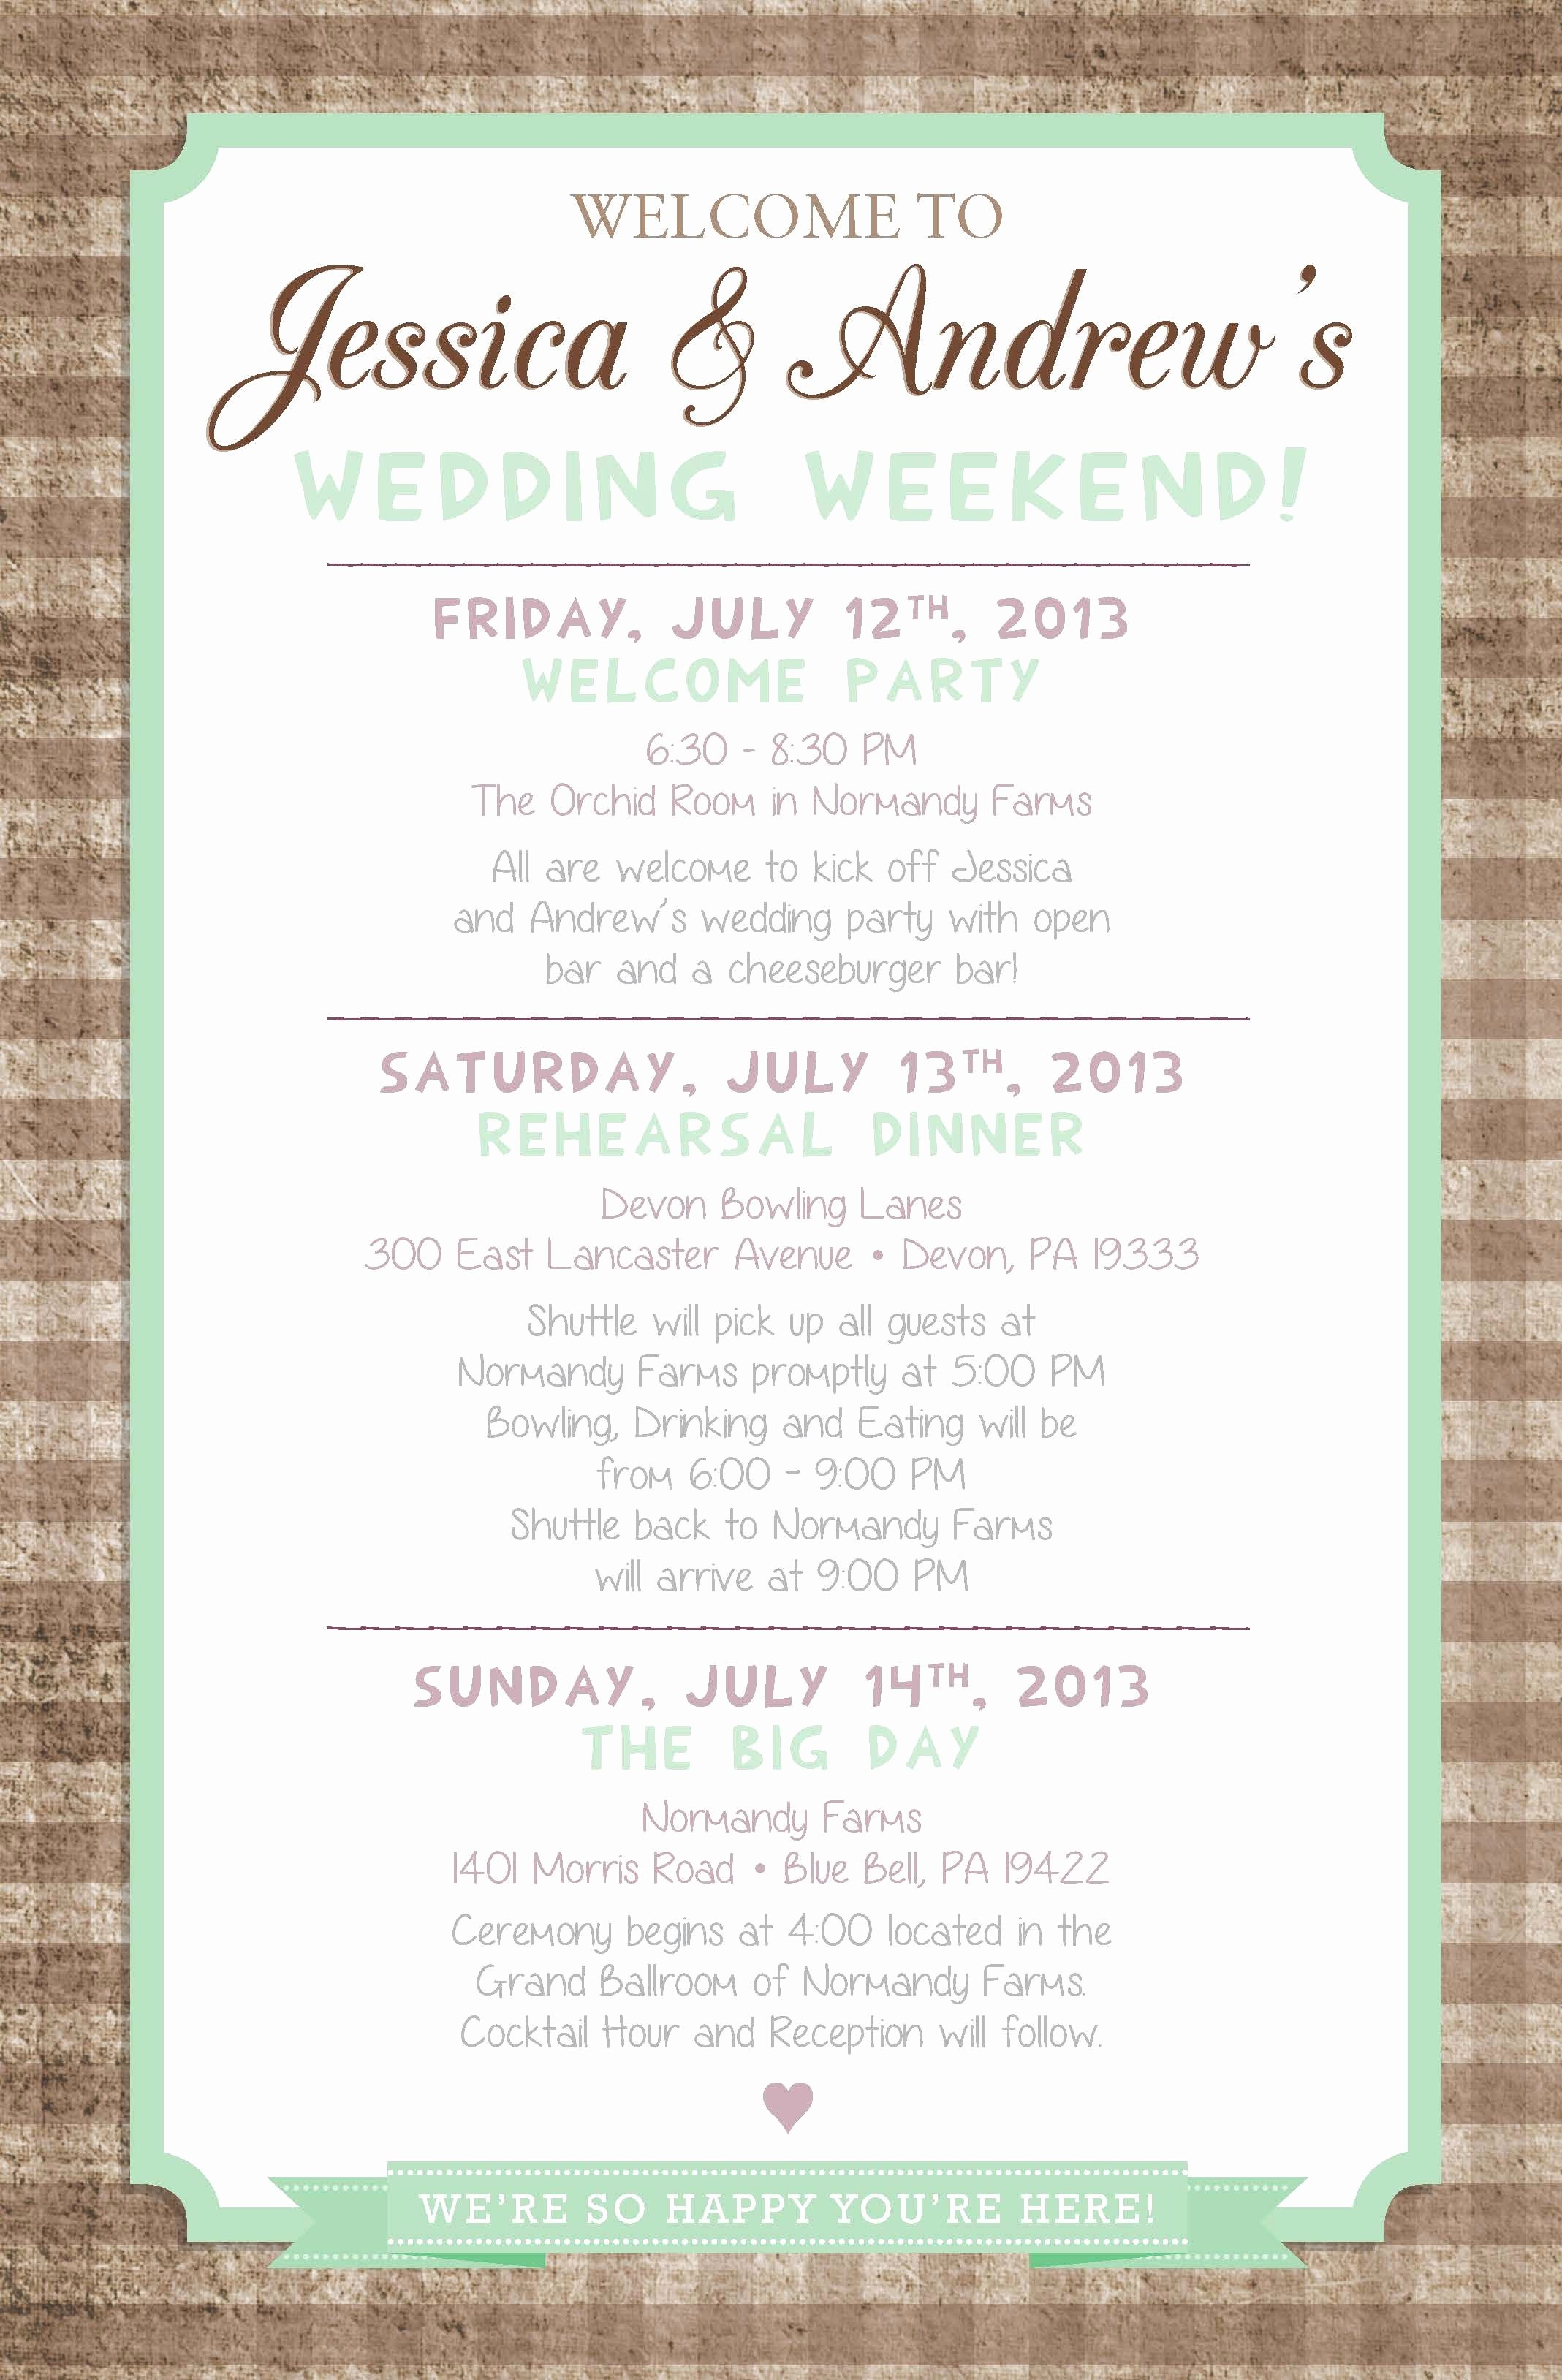 Wedding Weekend Itinerary Templates Beautiful Country Chic Wedding Weekend Itinerary by Paper & Lace